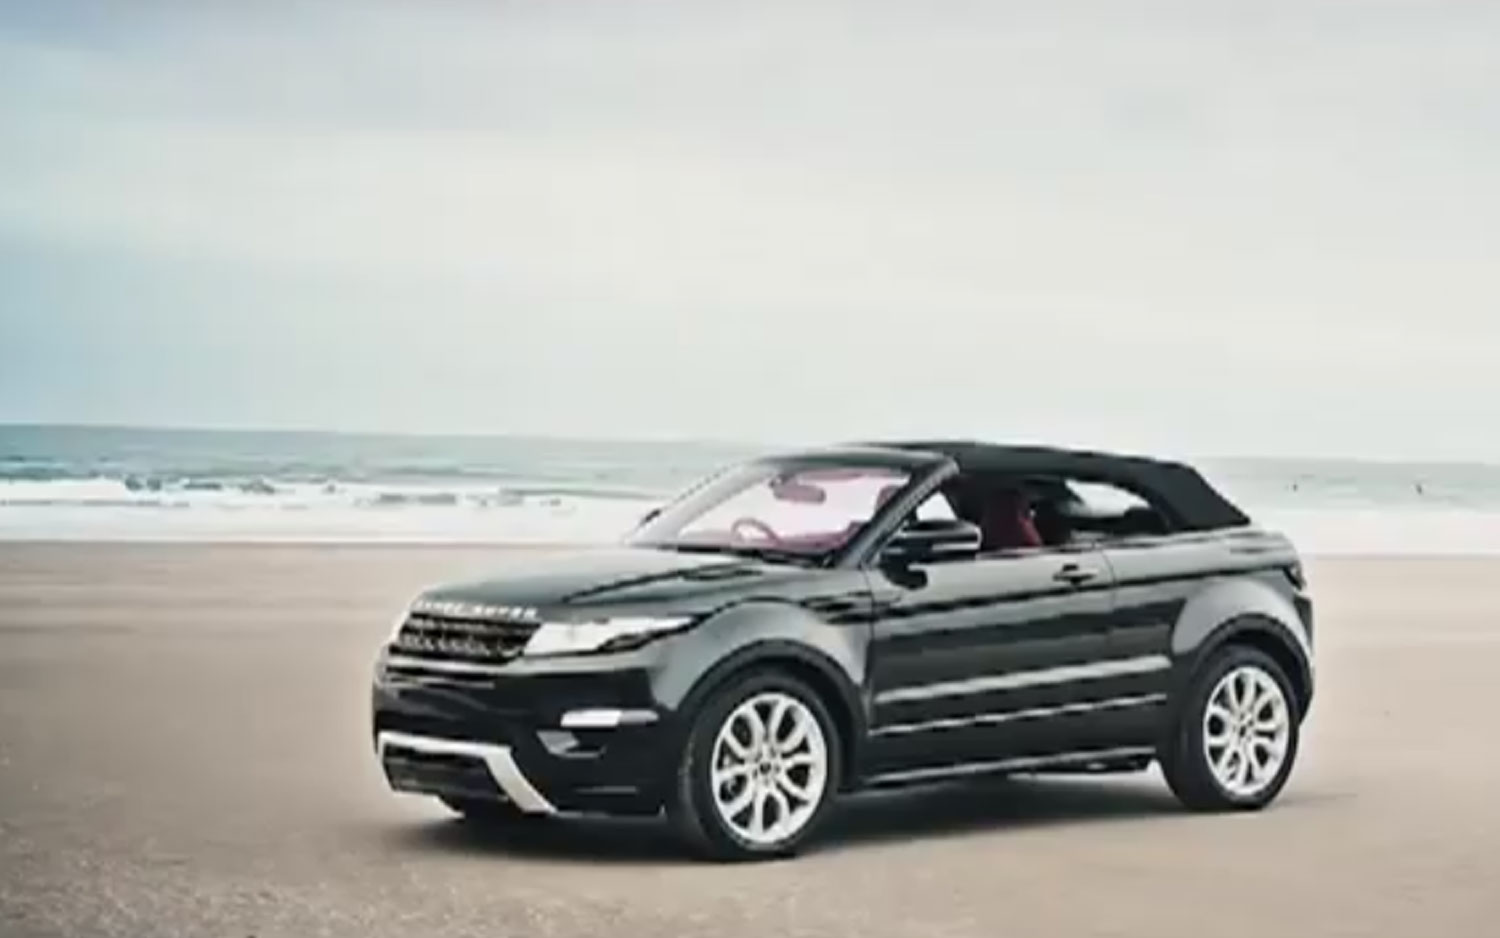 Range Rover Evoque Convertible Top Up1